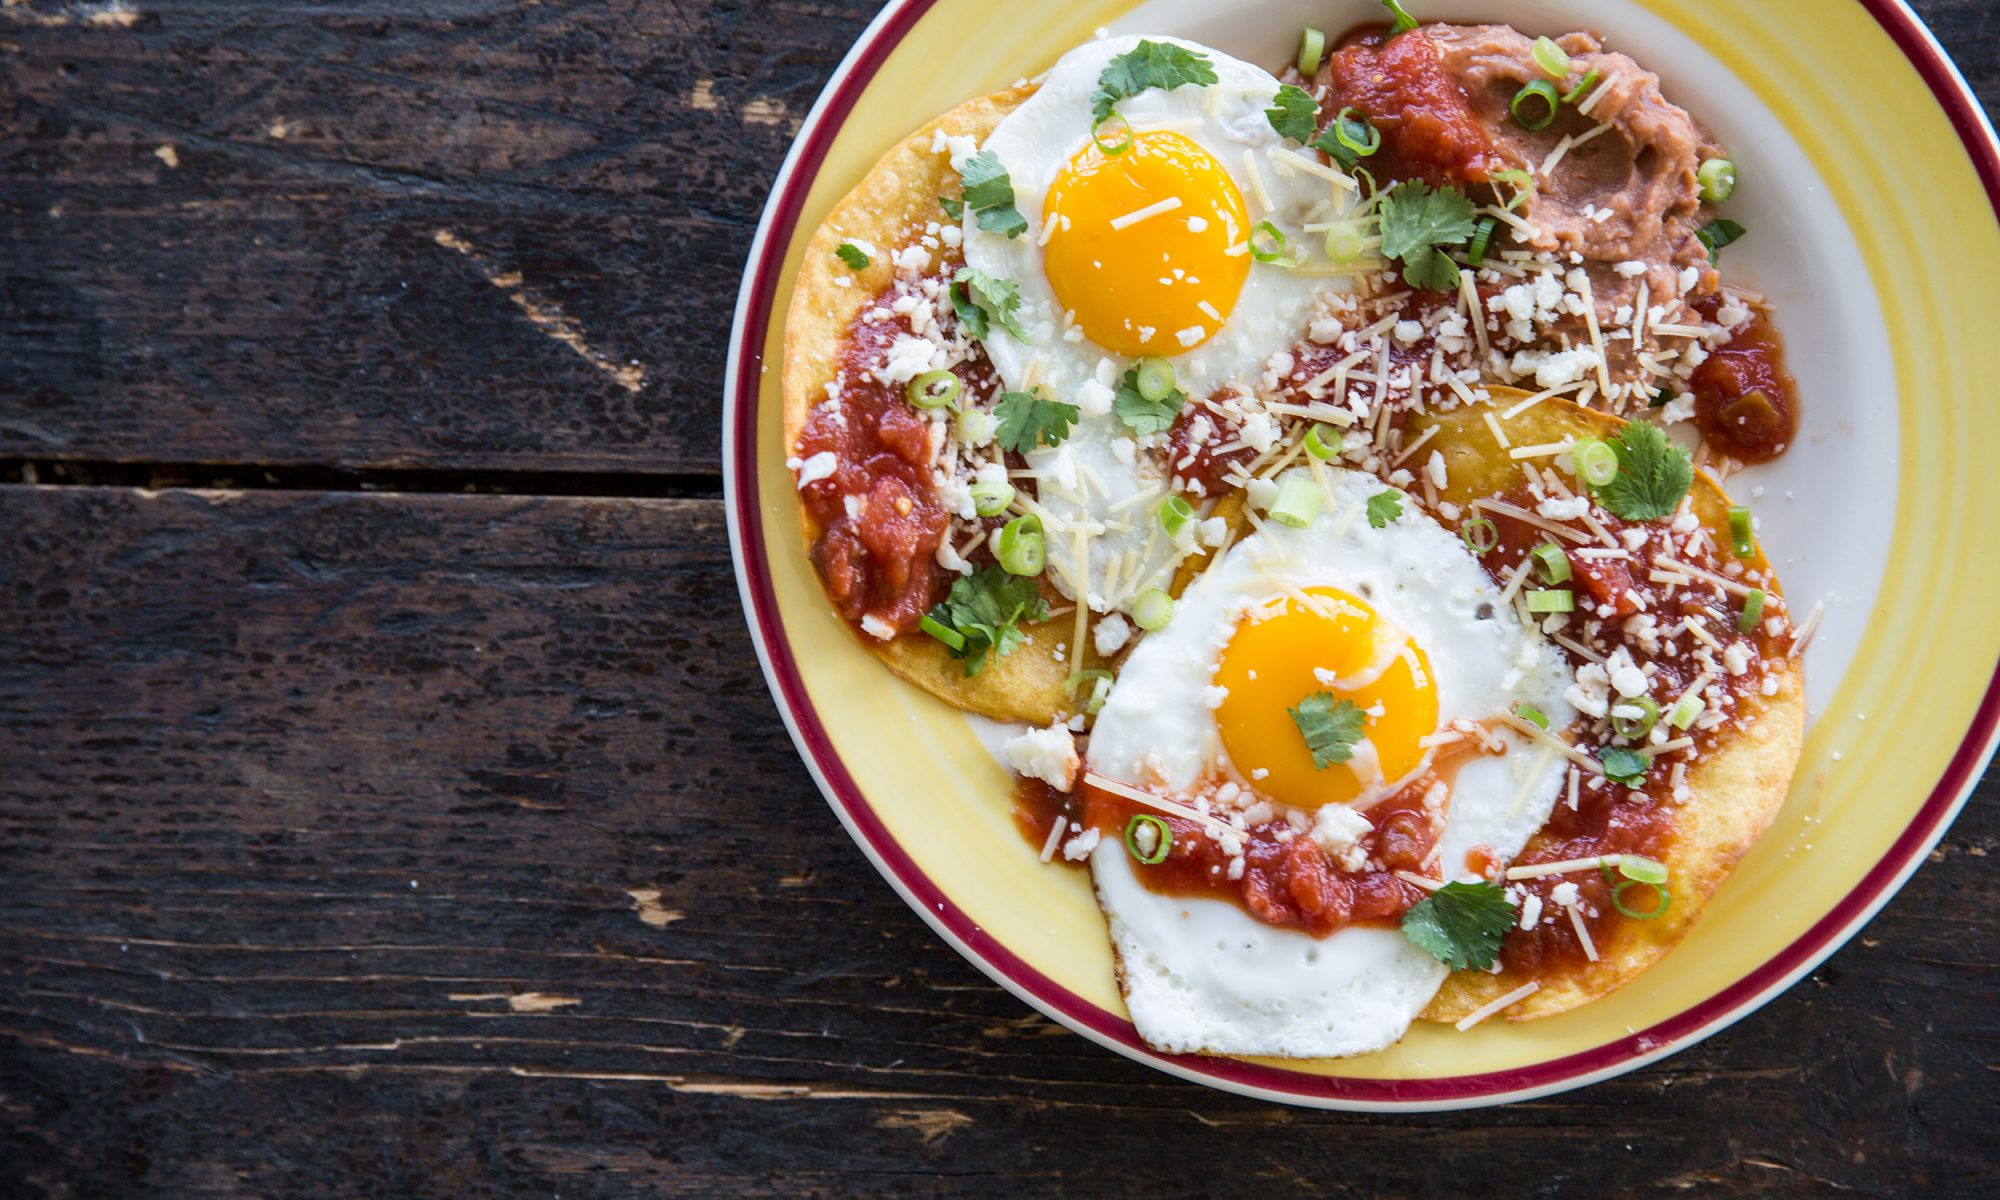 EC: This Huevos Rancheros Recipe Will Undo Last Night's Mistakes in 22 Minutes